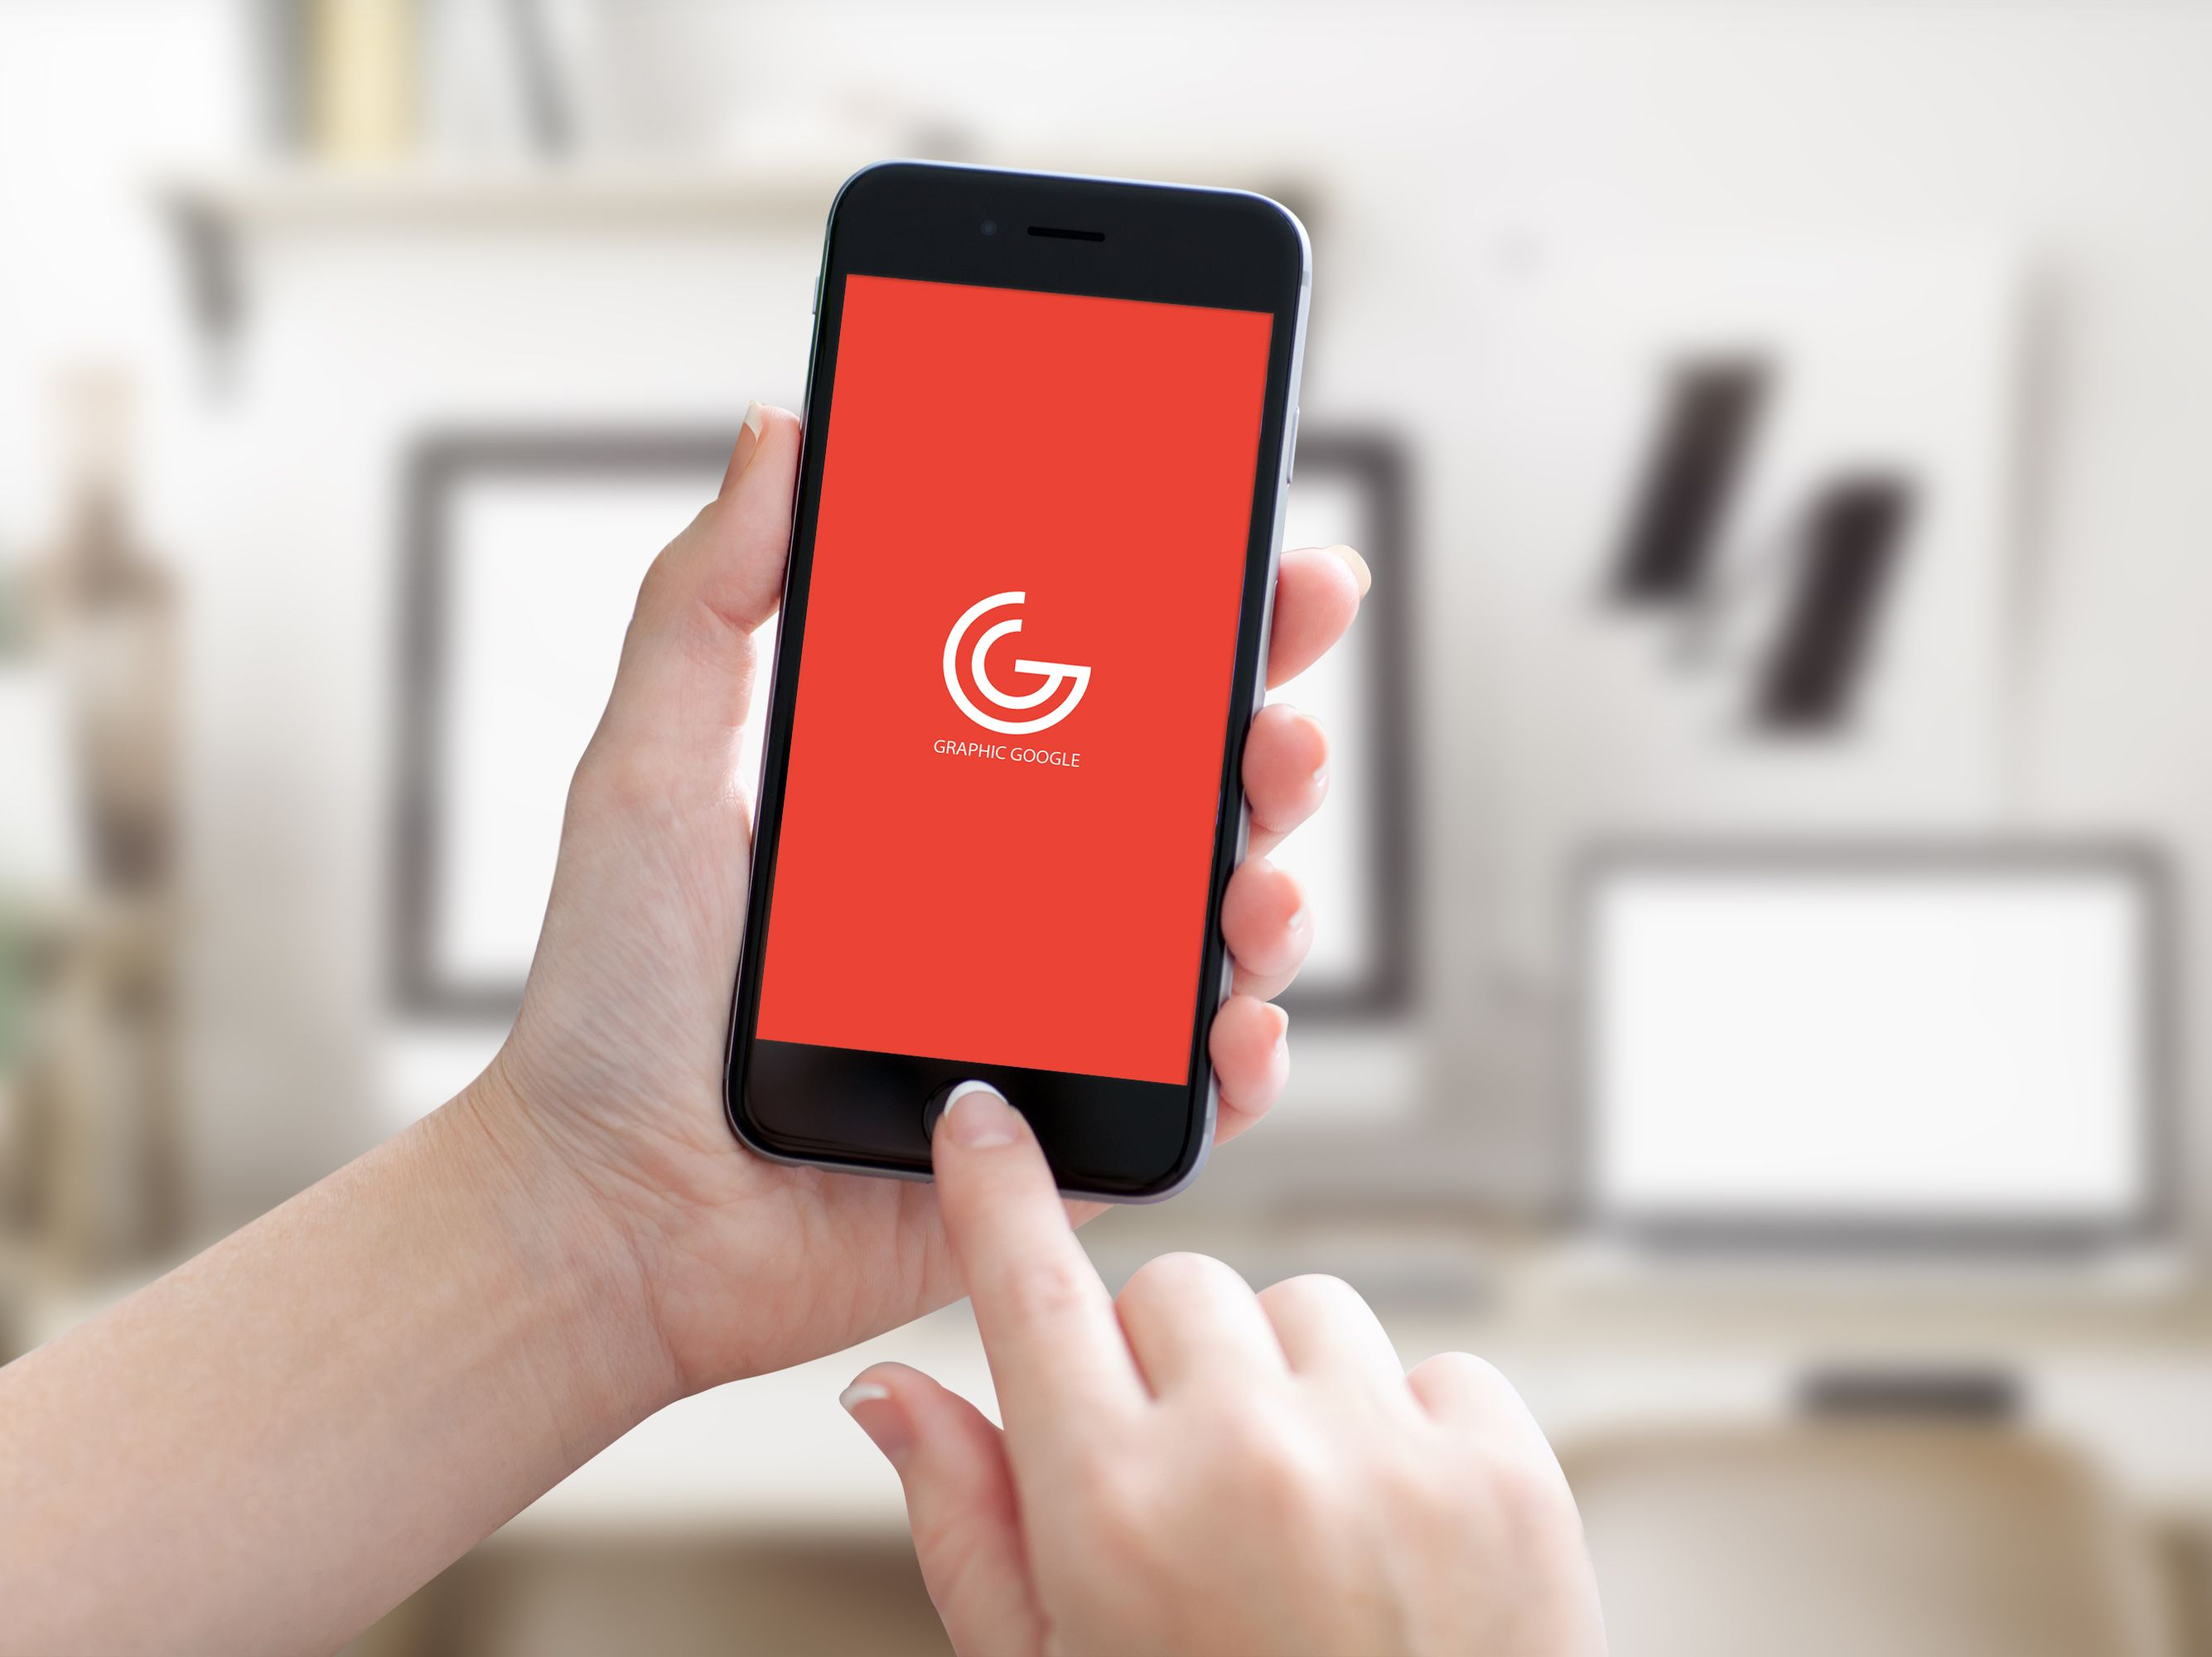 6 poster design photo mockups - Iphone 6 In Girl Hand Mockup Preview